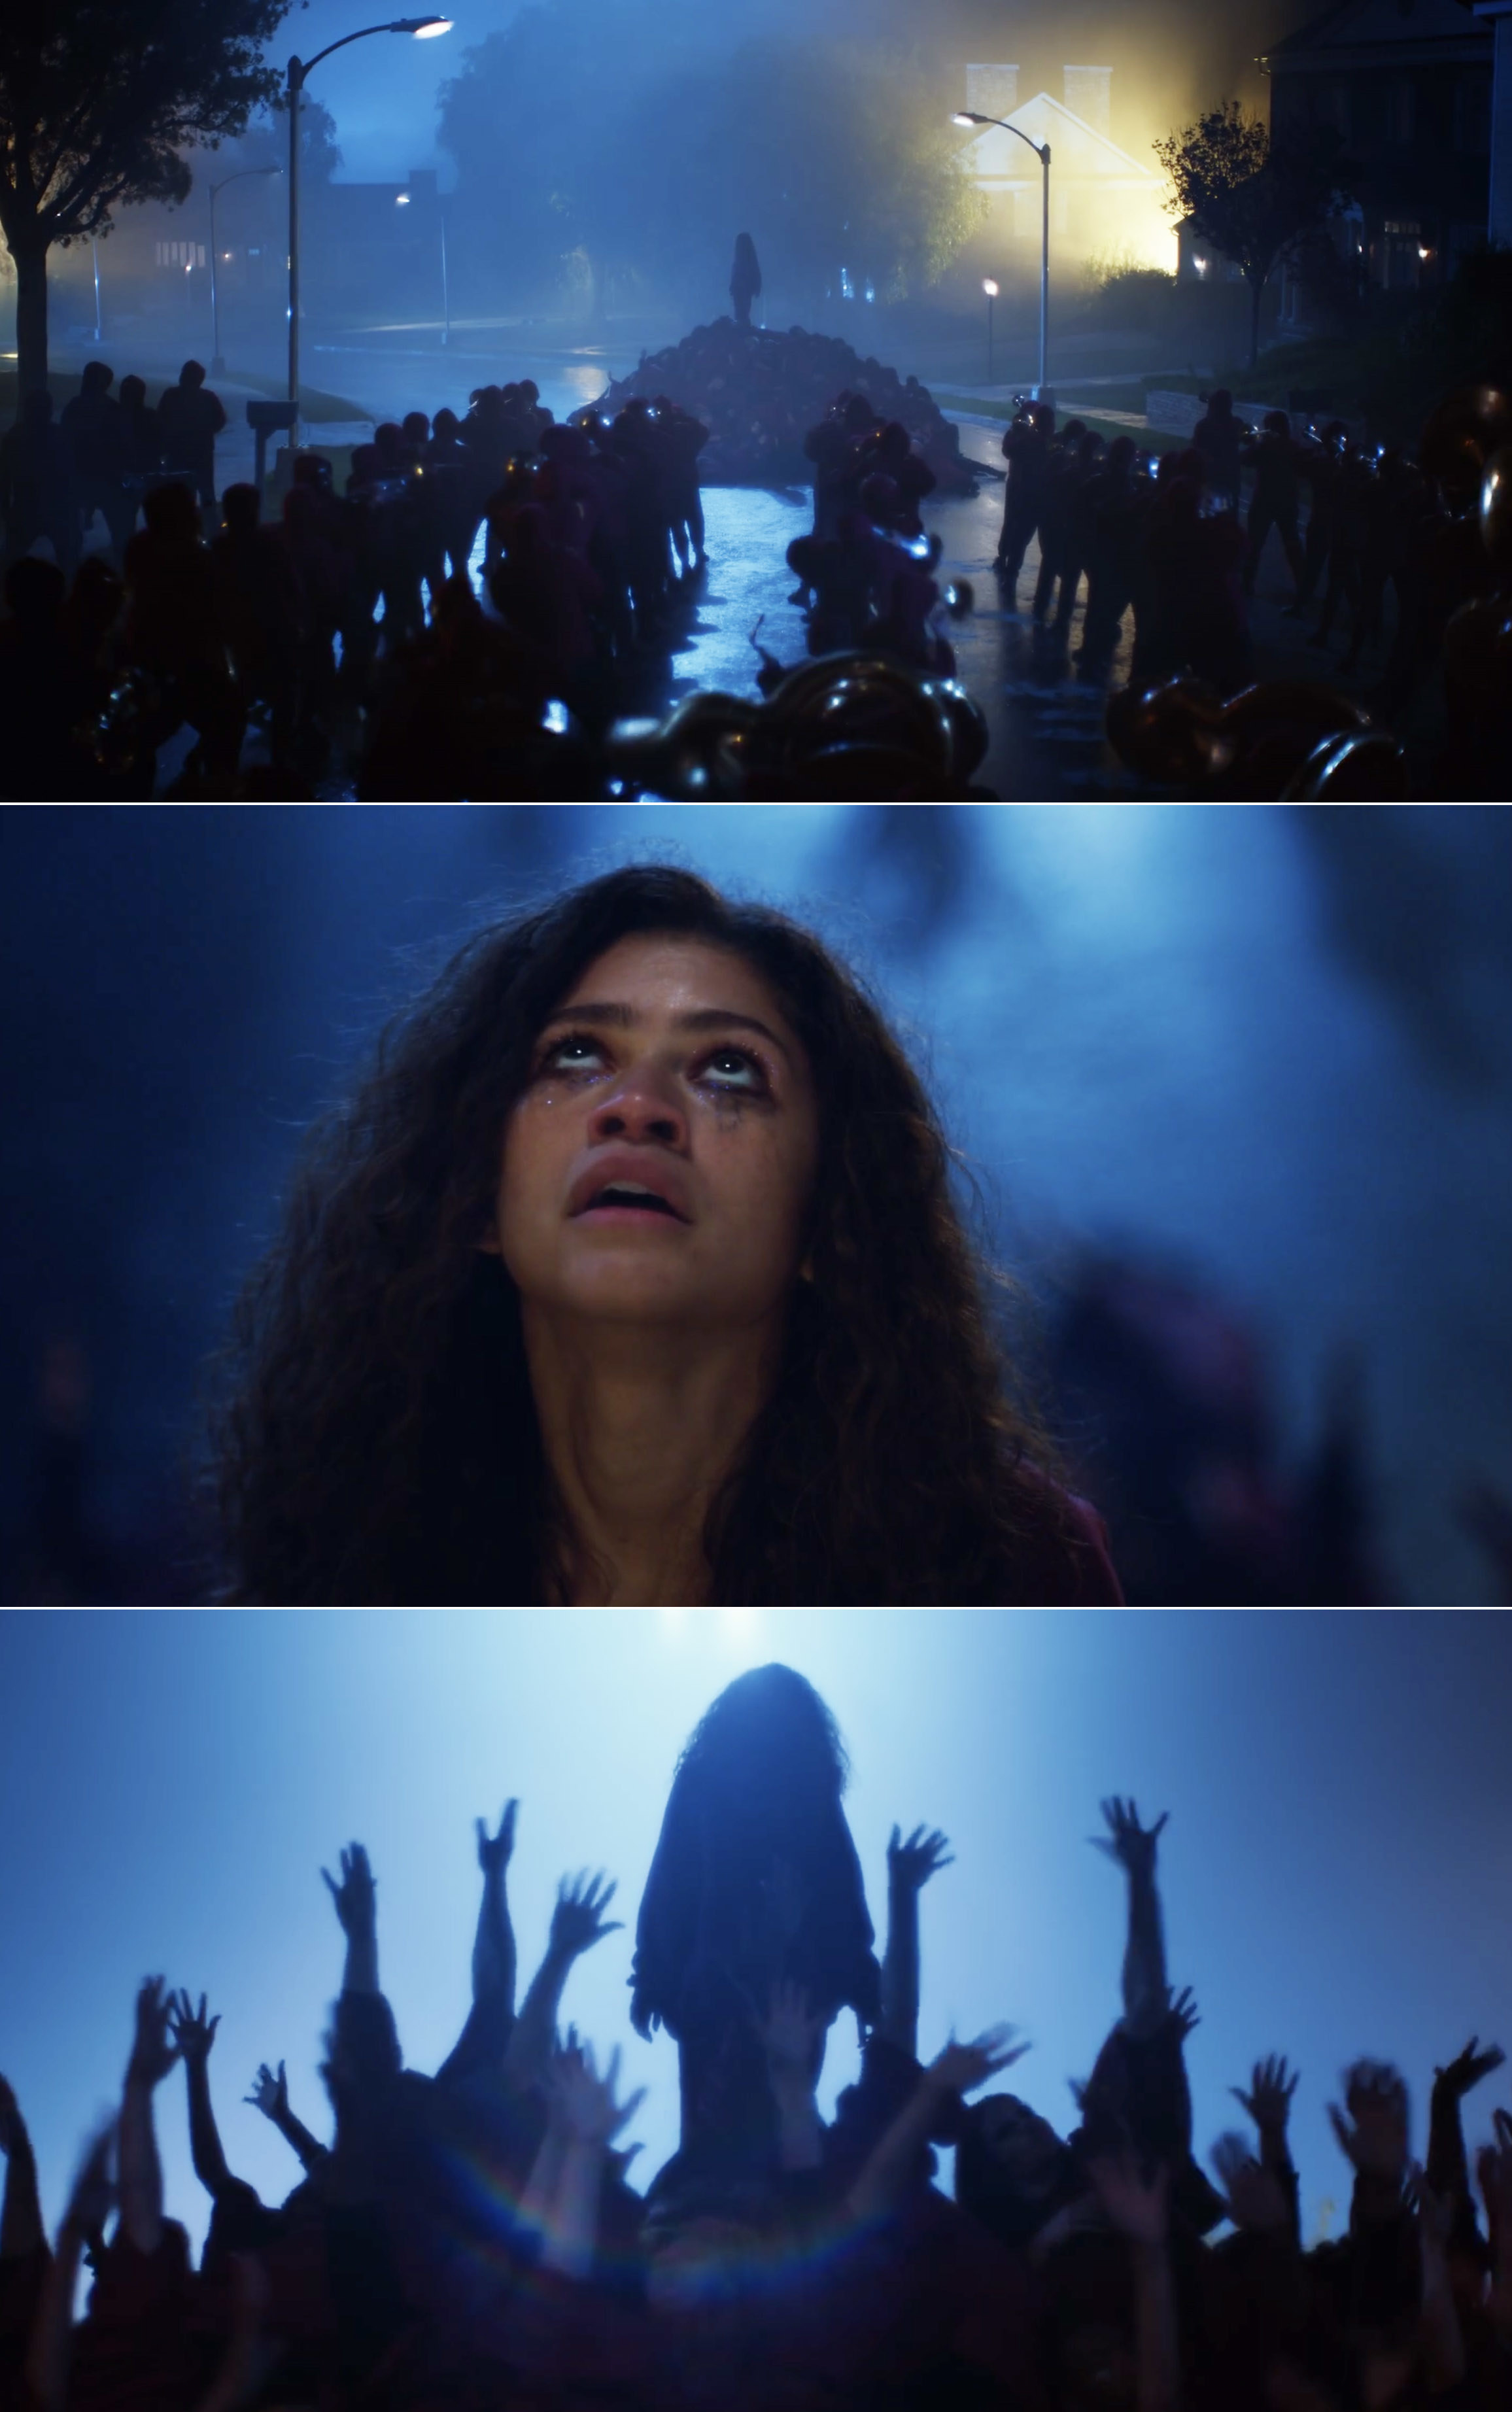 Rue dancing and singing during the Season 1 finale